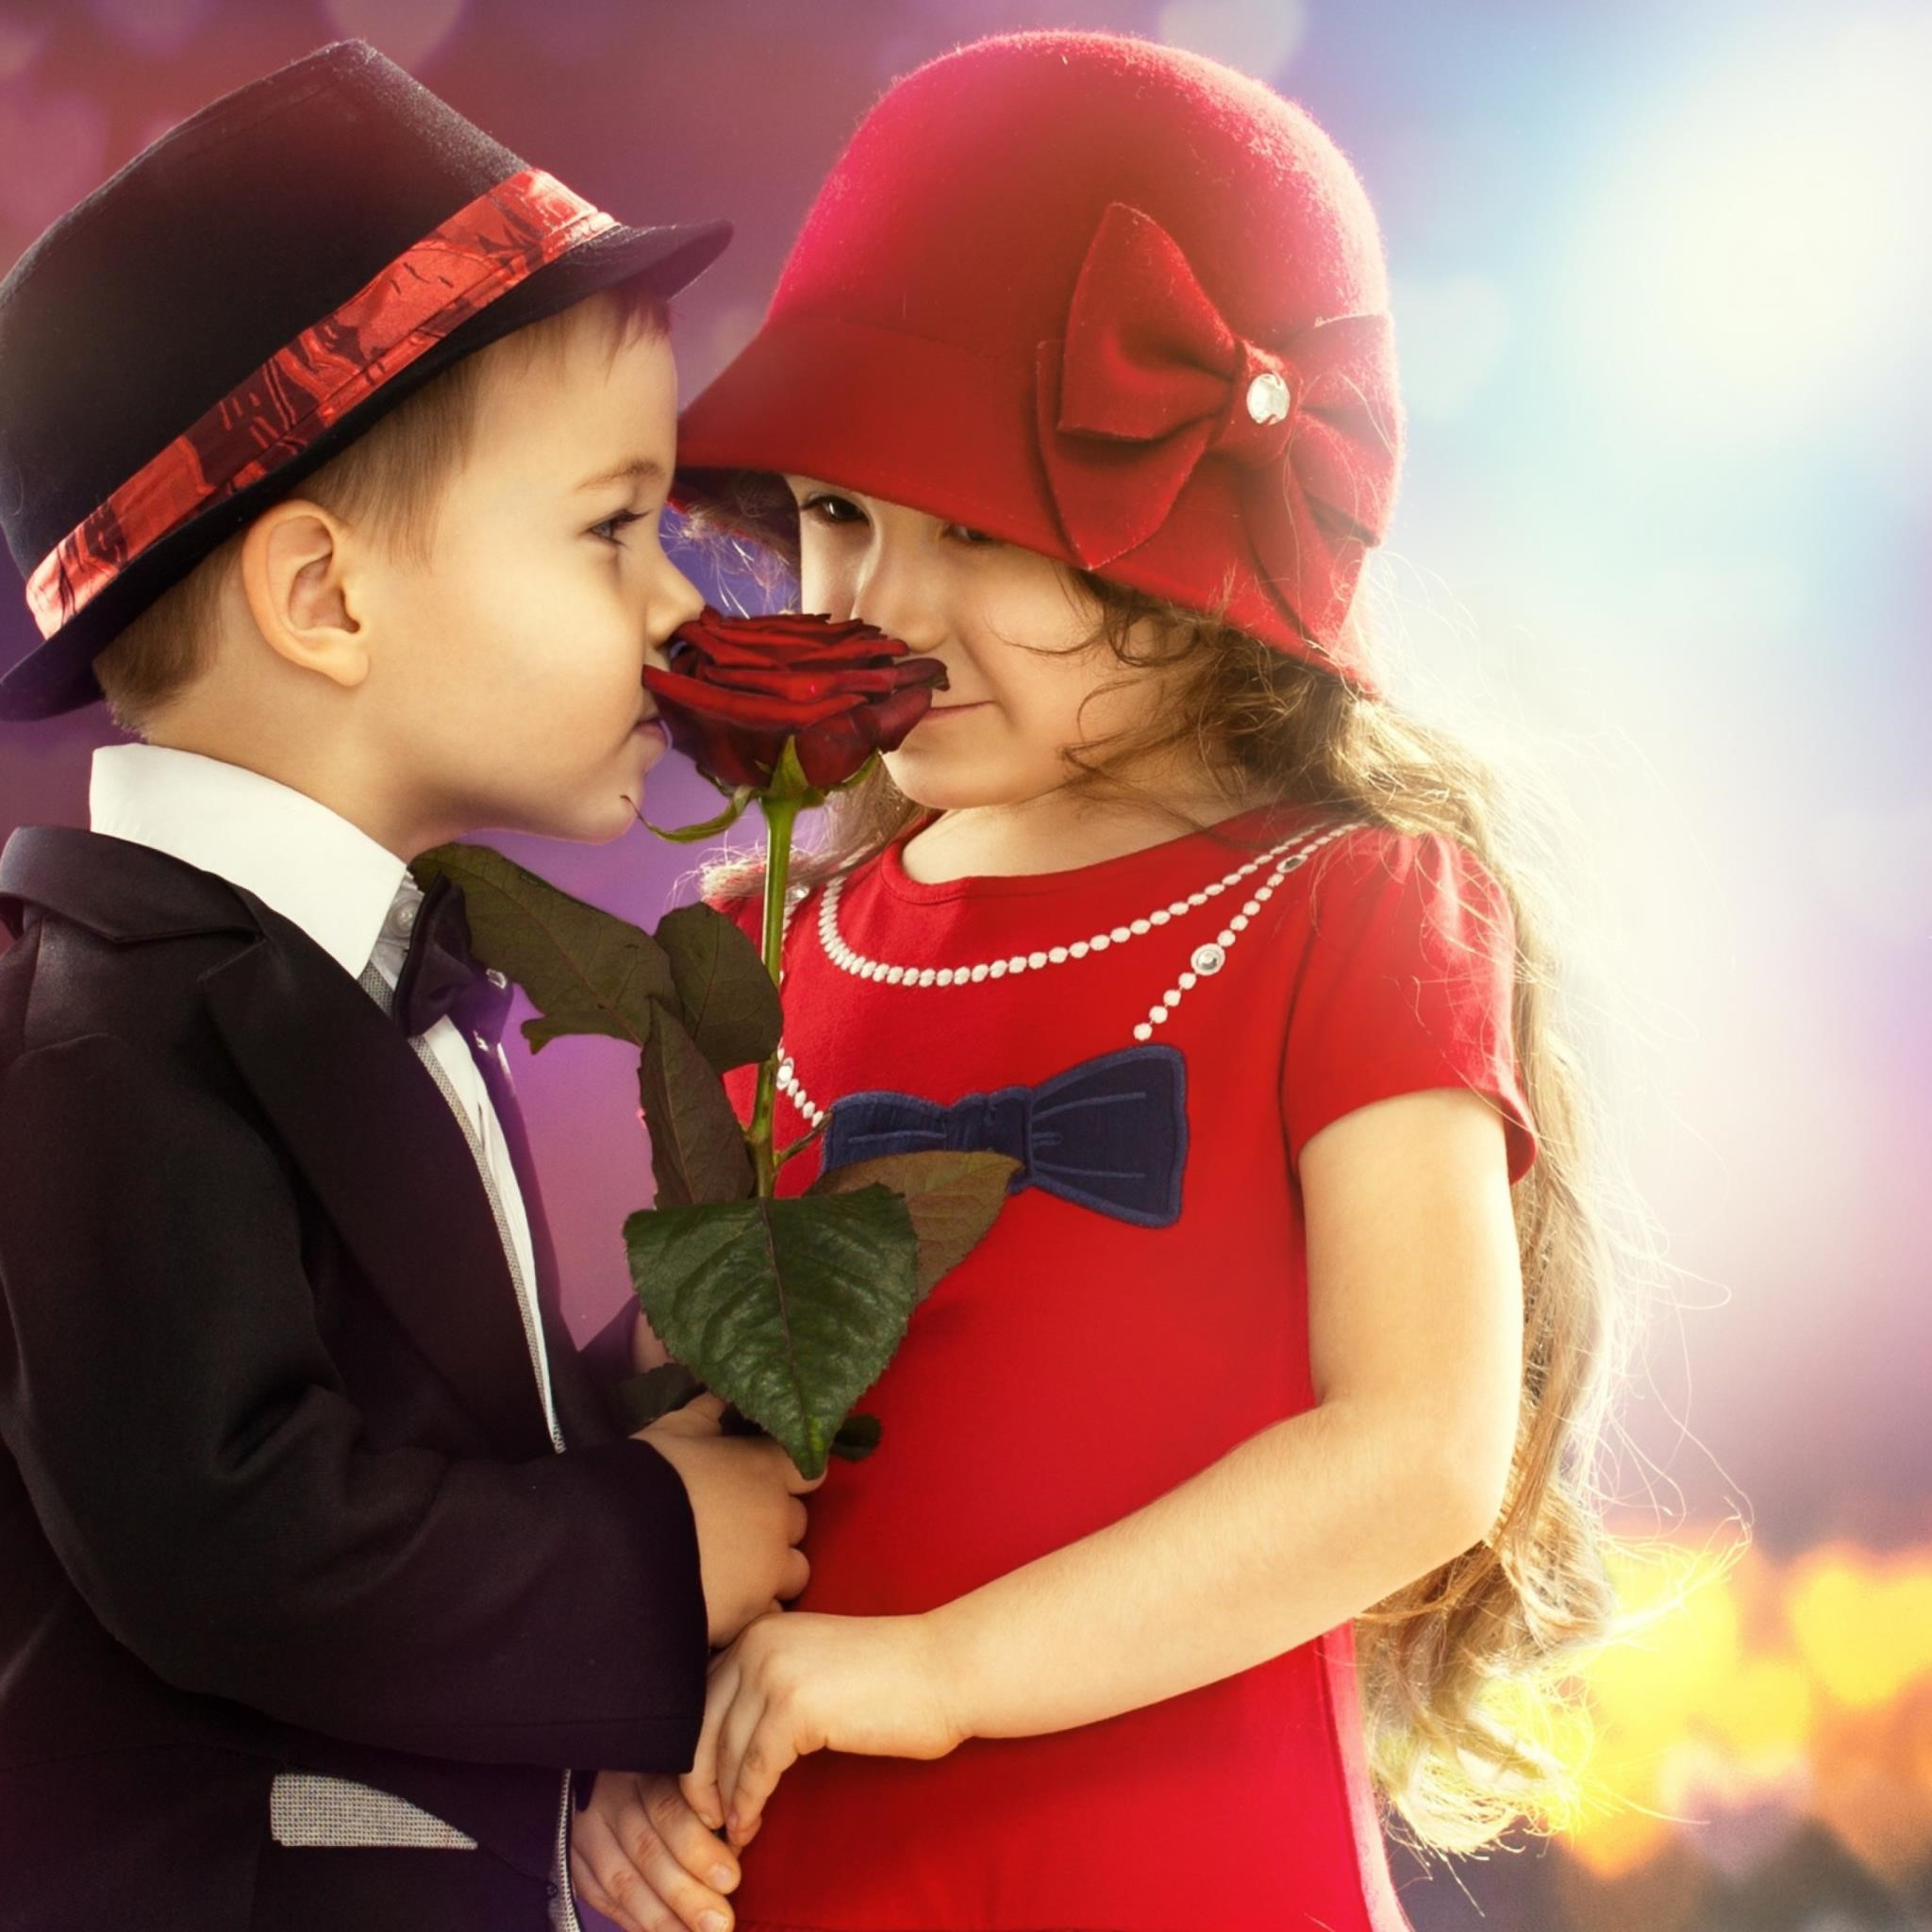 Cute Child Couple Wallpaper